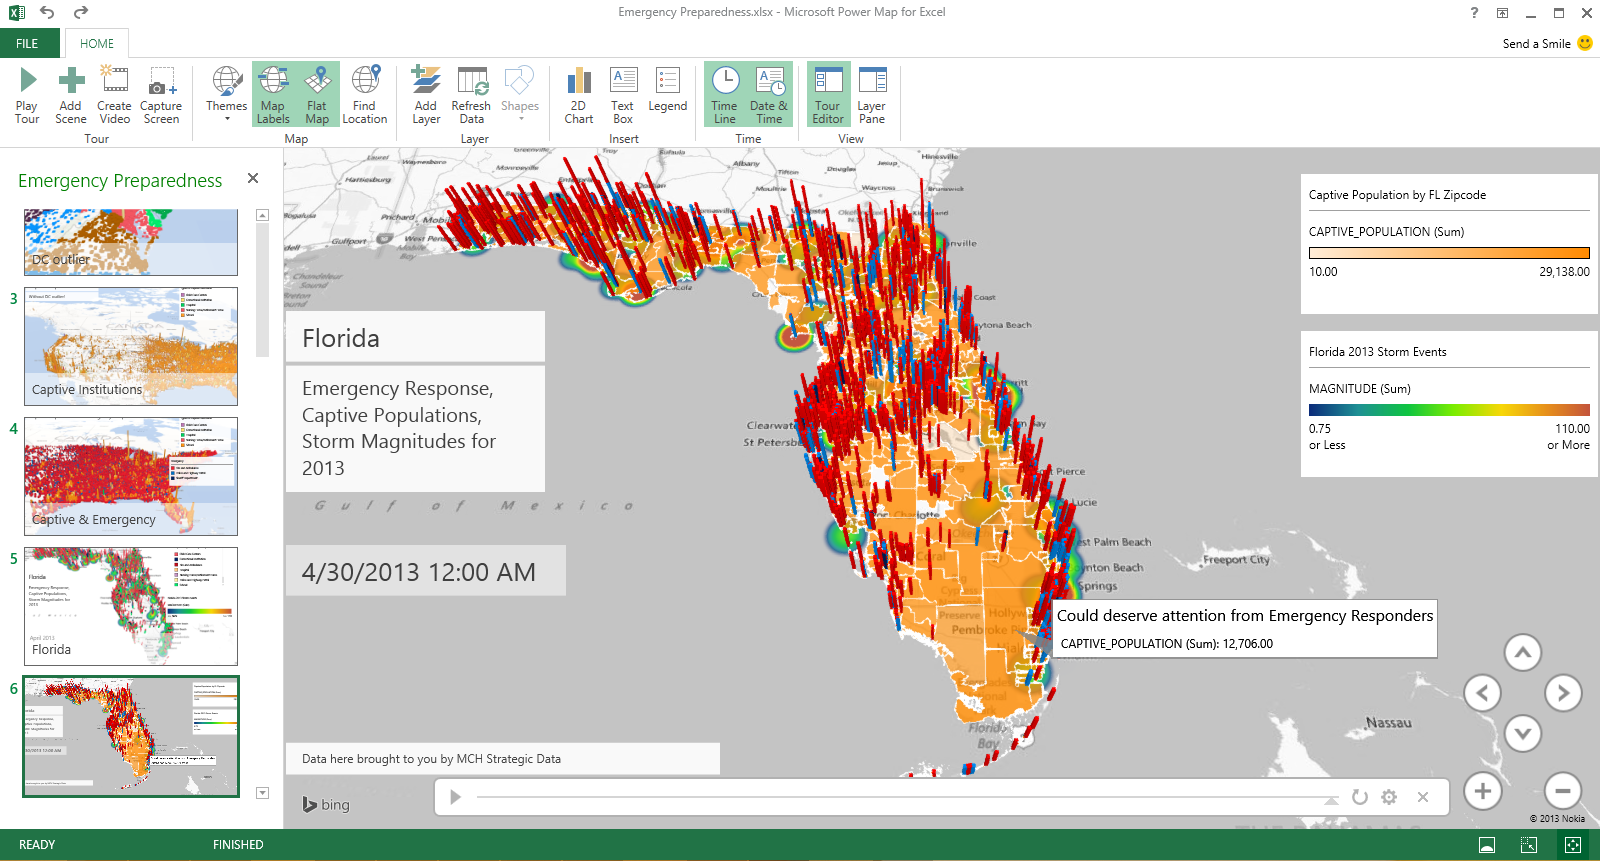 Ediblewildsus  Prepossessing Power Map For Excel Now Generally Available Automatically Updated  With Glamorous Power Map For Excel Now Generally Available Automatically Updated For Office  With Delightful Trial Version Excel Also Finding Median In Excel In Addition Statistics Add In For Excel And Link Excel Workbooks As Well As Rank Excel  Additionally Excel Formula Substring From Powerbimicrosoftcom With Ediblewildsus  Glamorous Power Map For Excel Now Generally Available Automatically Updated  With Delightful Power Map For Excel Now Generally Available Automatically Updated For Office  And Prepossessing Trial Version Excel Also Finding Median In Excel In Addition Statistics Add In For Excel From Powerbimicrosoftcom